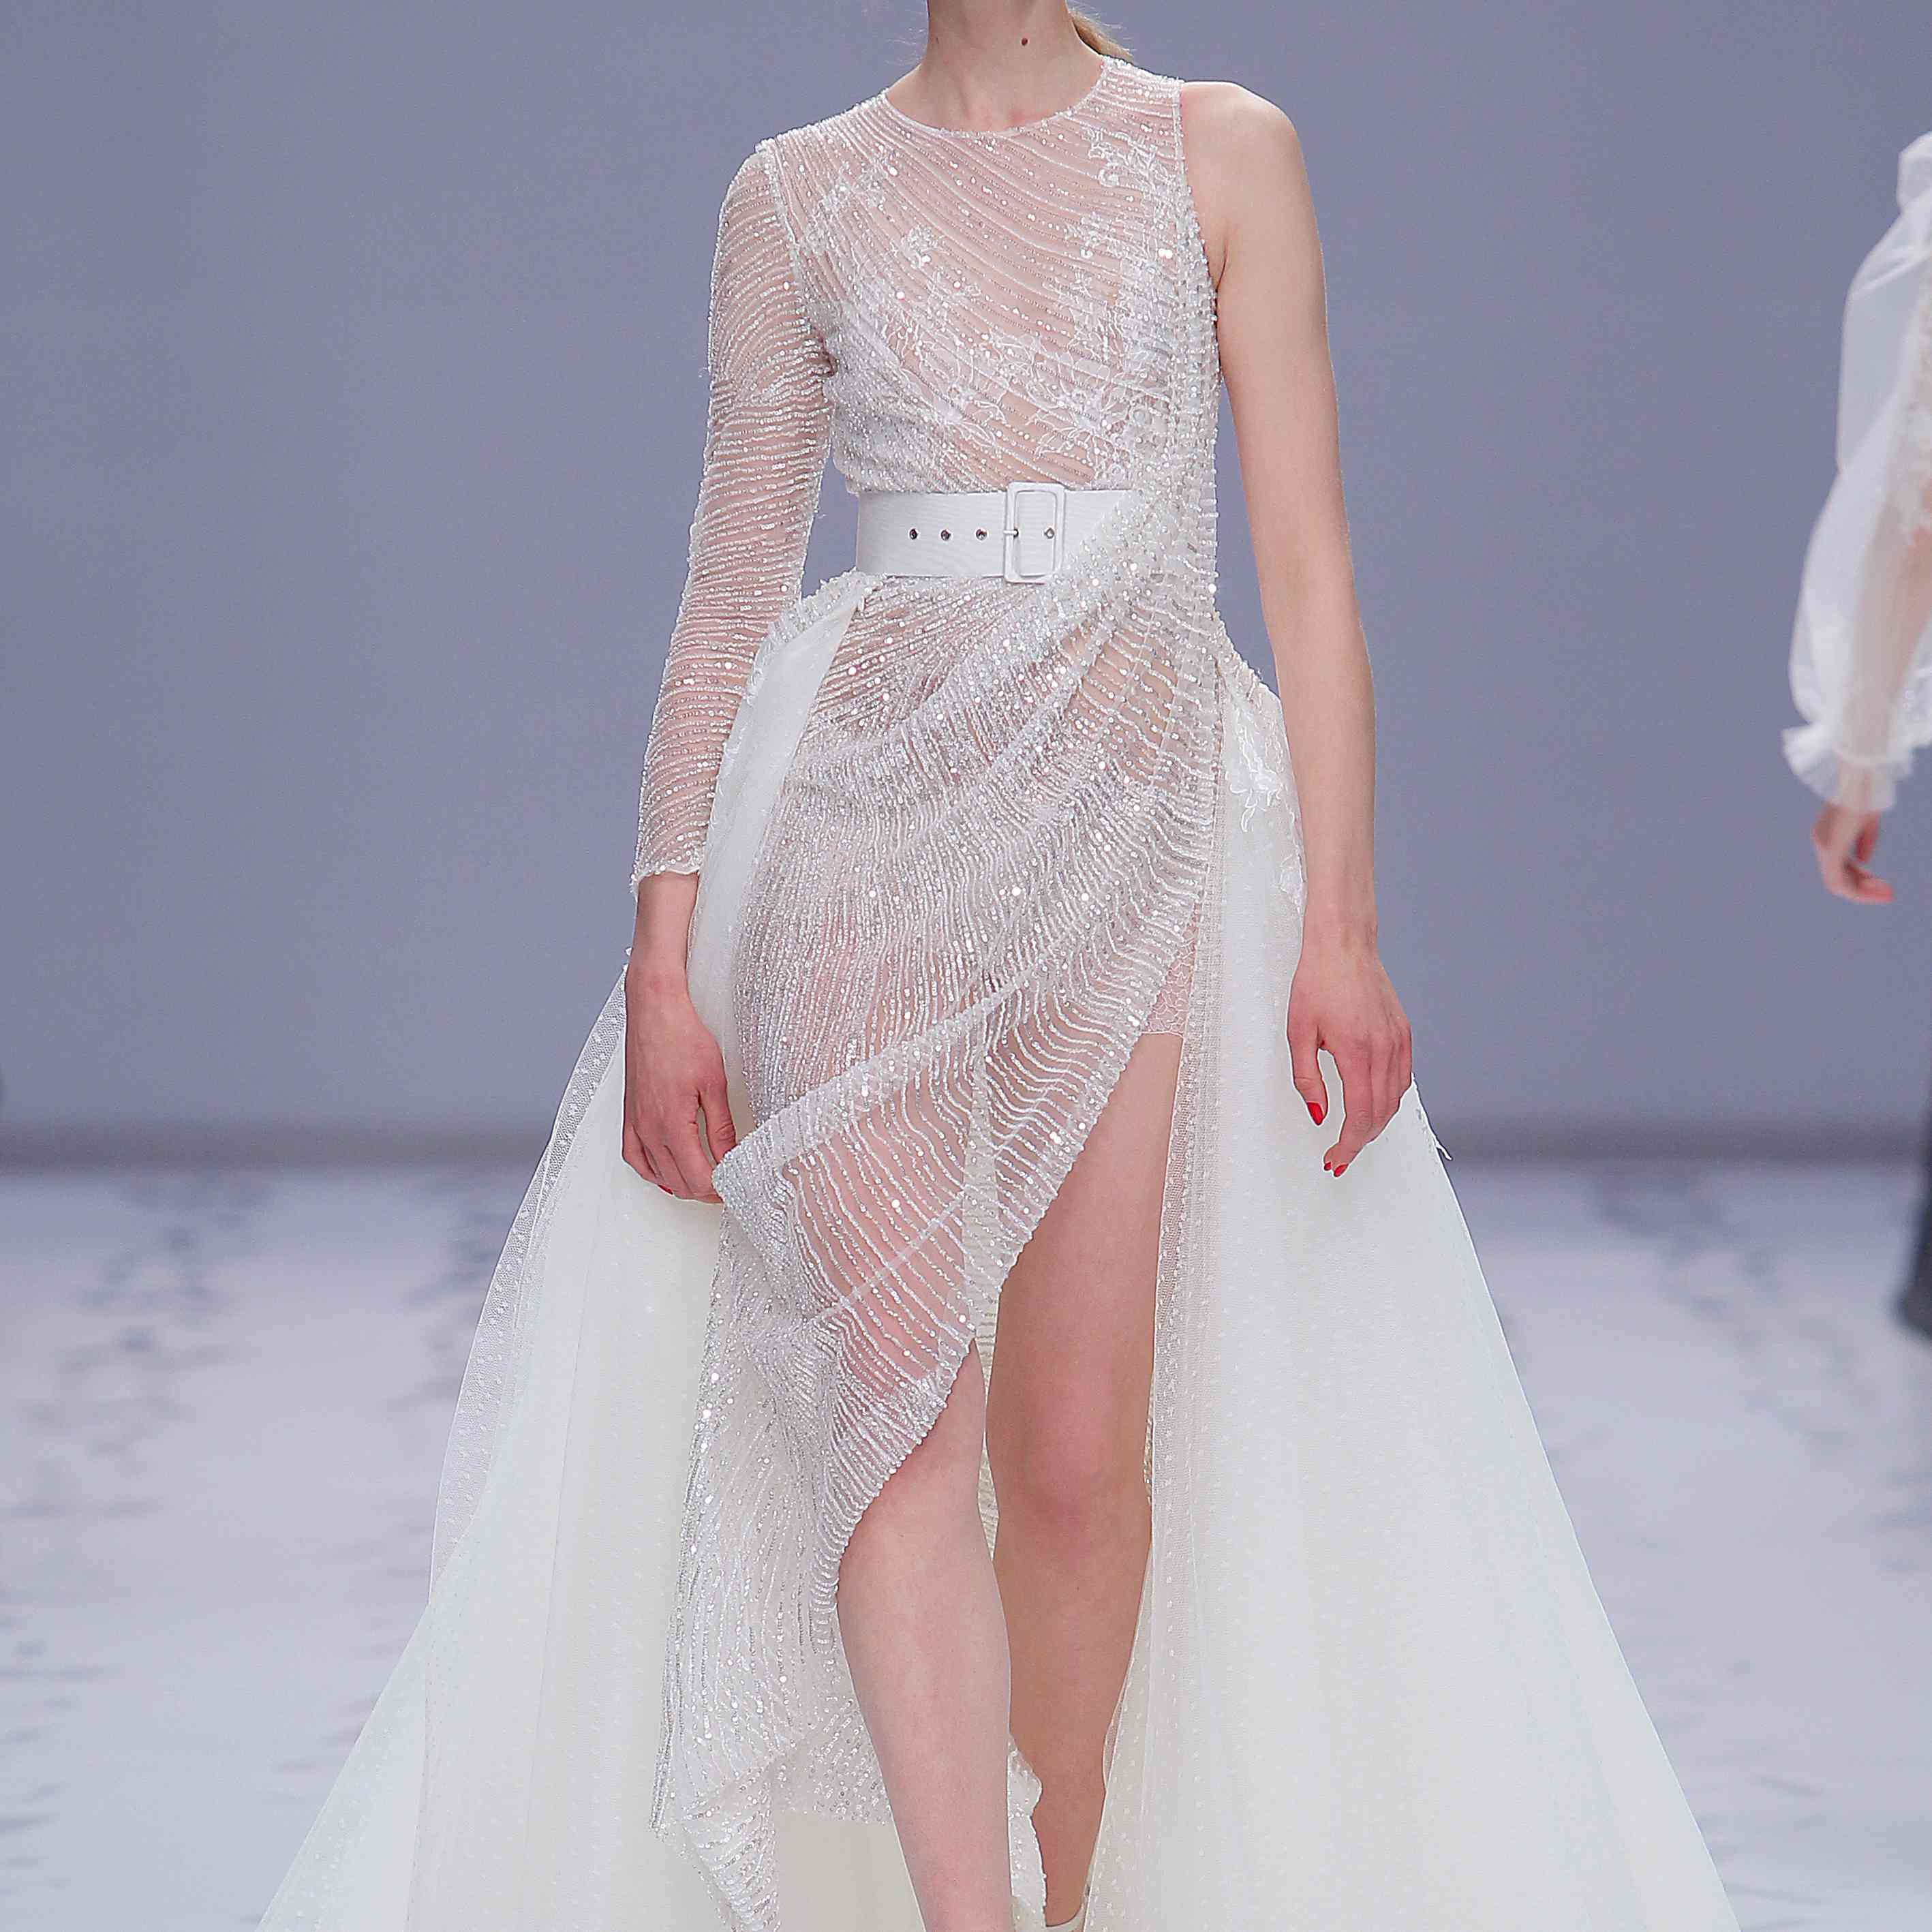 Model in a delicate sheer dress with lace and sequins, an asymmetrical sleeve, an asymmetrically draped skirt, and a plumetti overskirt with a train